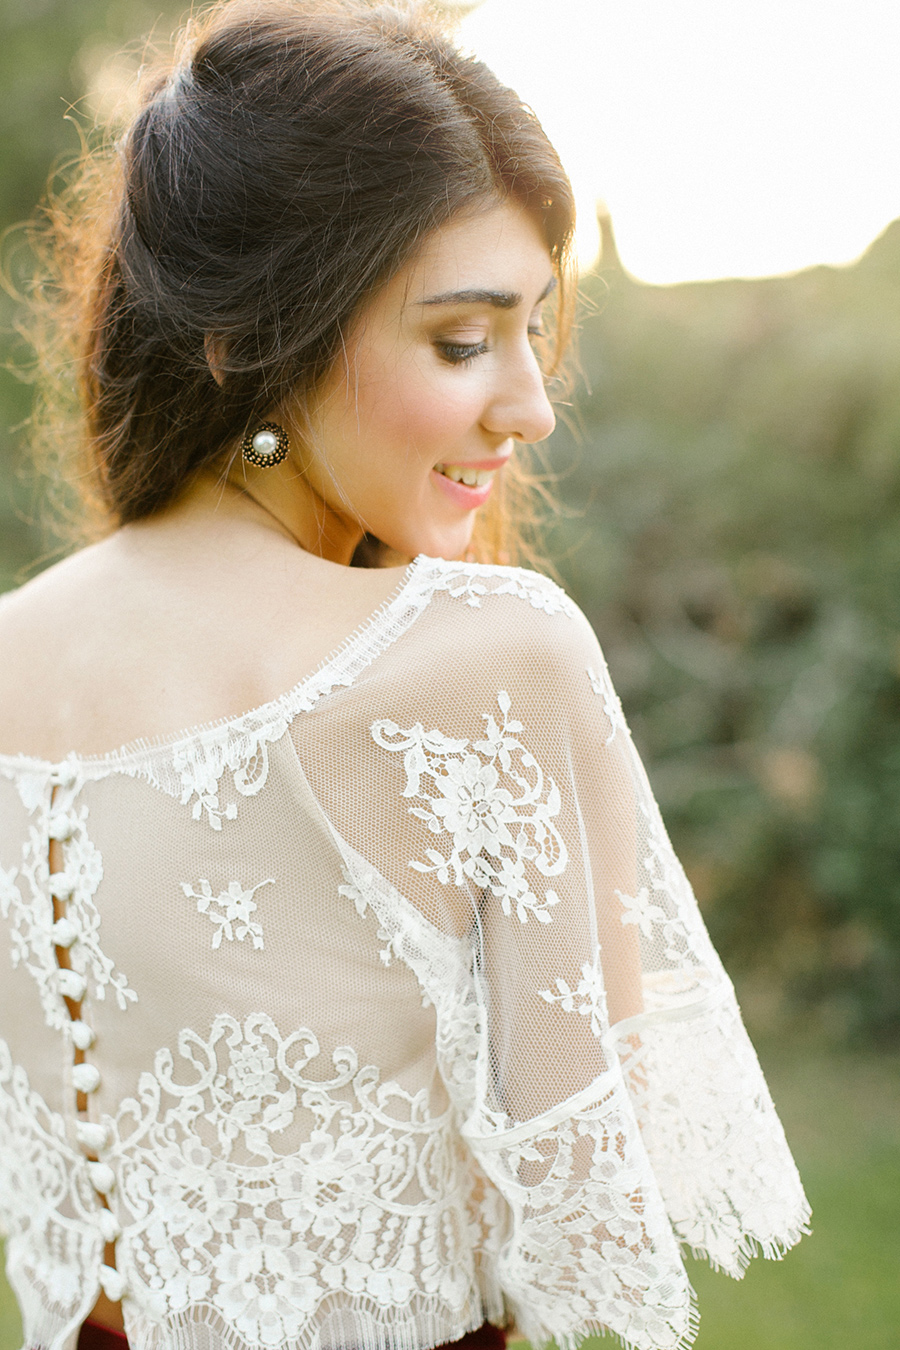 Gorgeous Boho Chic Inspired Wedding {styled shoot} in Greece / coordinated by Love 4 Wed / photo by Anna Roussos Photography